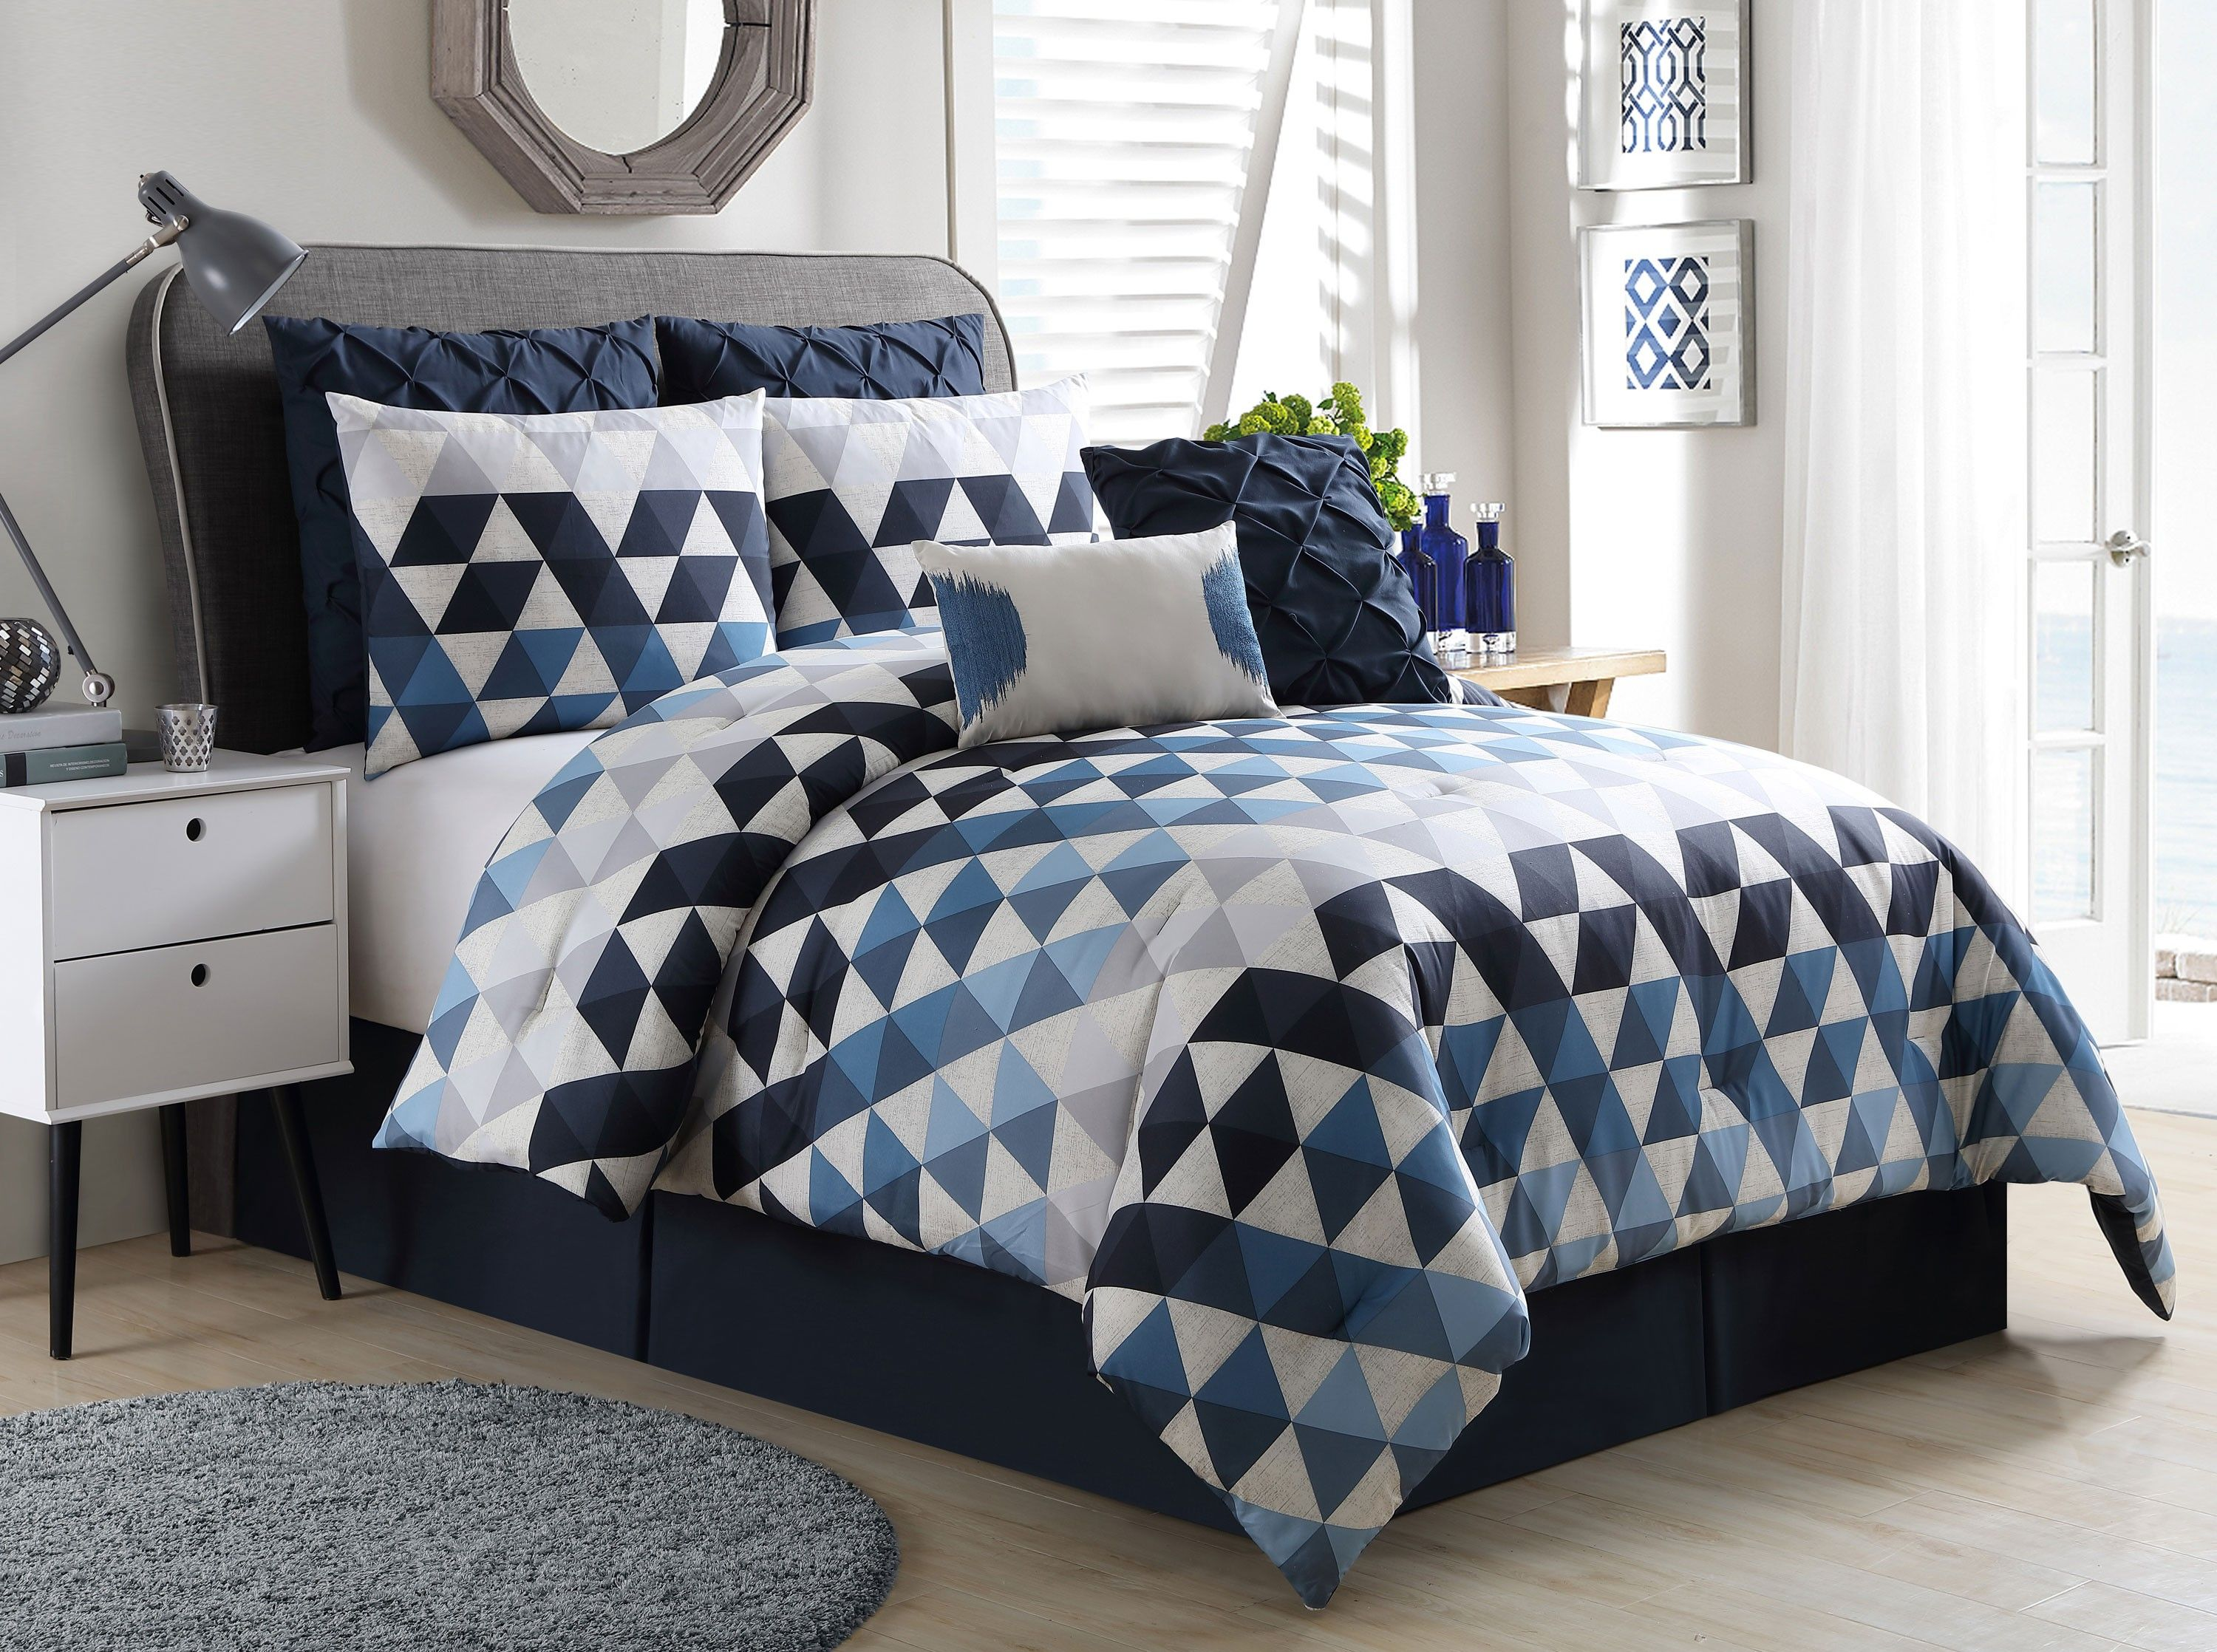 Vcny Onyx King Oversized Comforter 8 Piece Bedding Set Navy Blue Geometric Geometric Bedding Bed Linens Luxury Bed